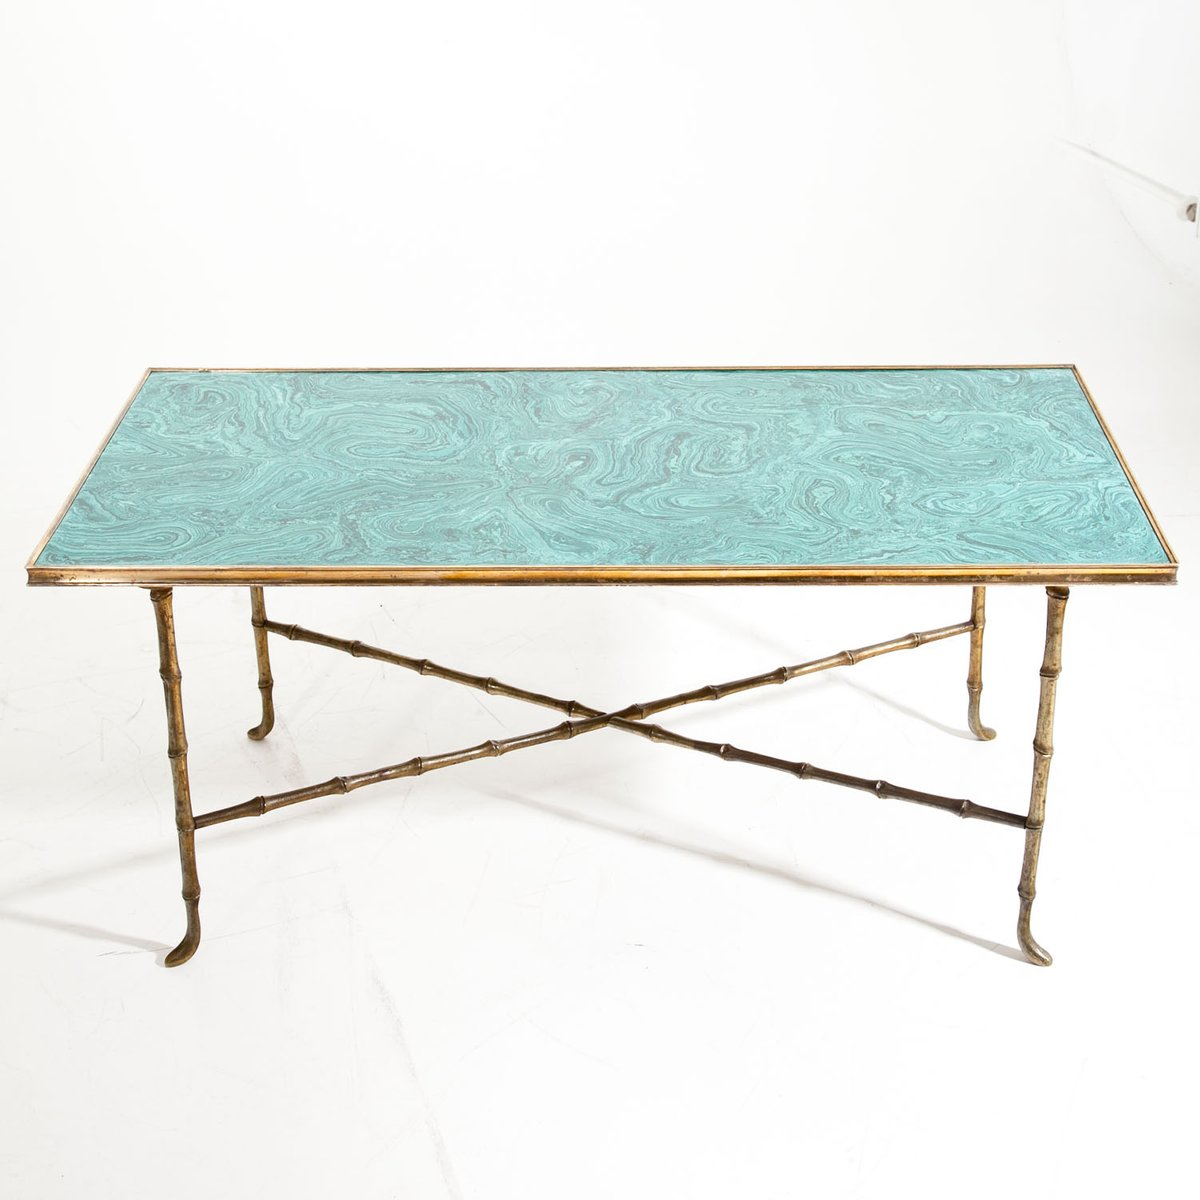 Vintage Coffee Table with Malachite Top